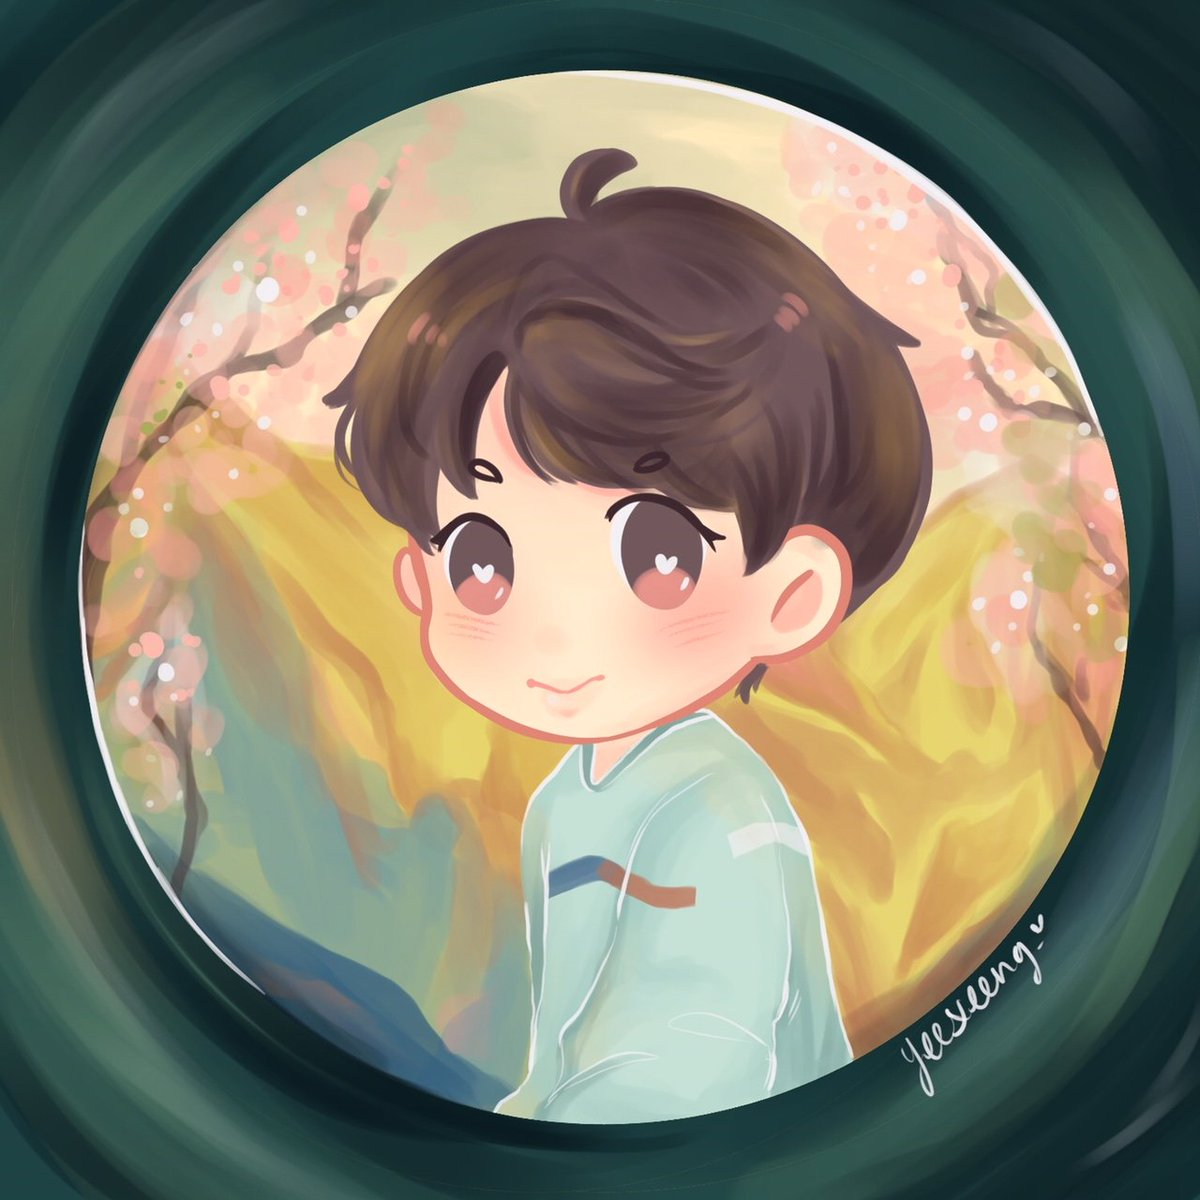 Pass the end of this cold winter, until the spring day comes again   #TimelessSpringDay #btsfanart #봄날 #JIN<br>http://pic.twitter.com/oup6UjaGEZ